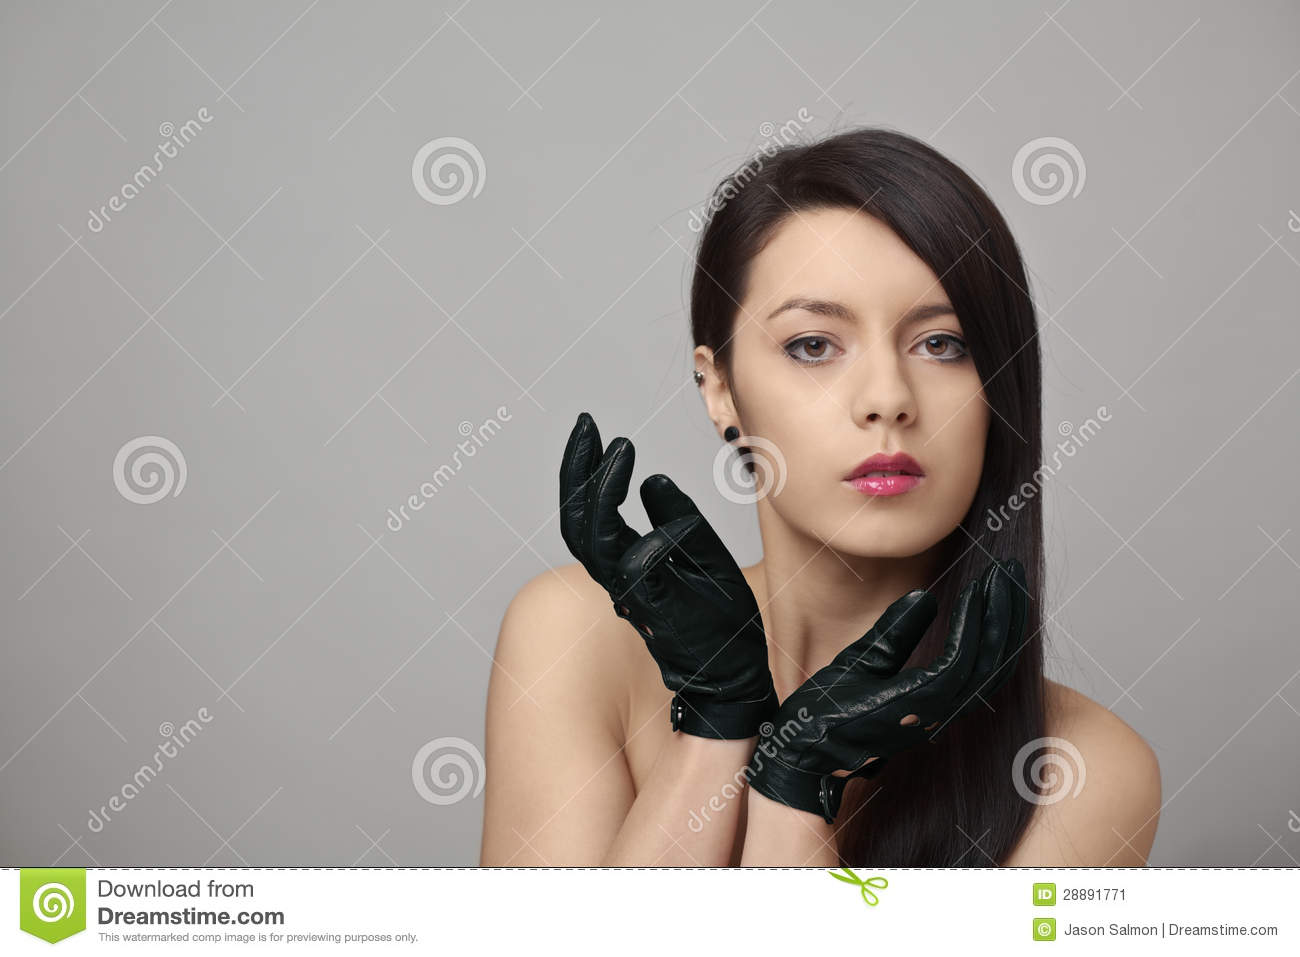 Driving gloves girl -